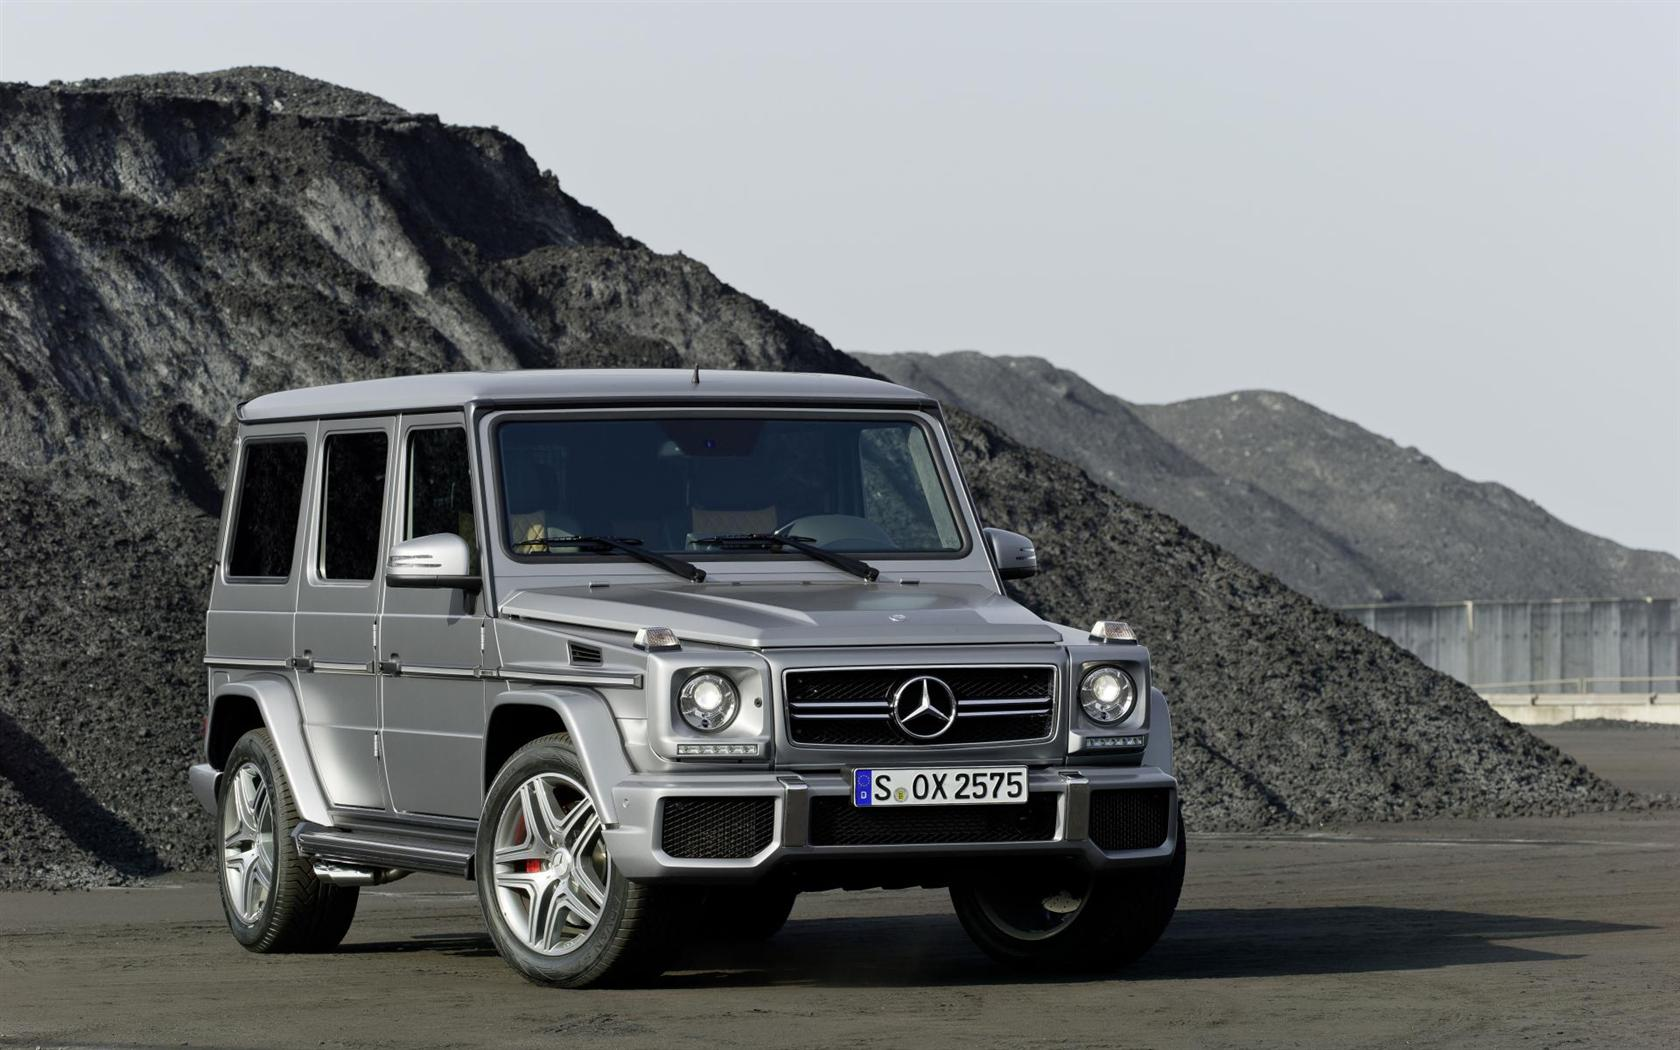 2013 mercedes benz g63 amg image for 2013 mercedes benz g63 amg